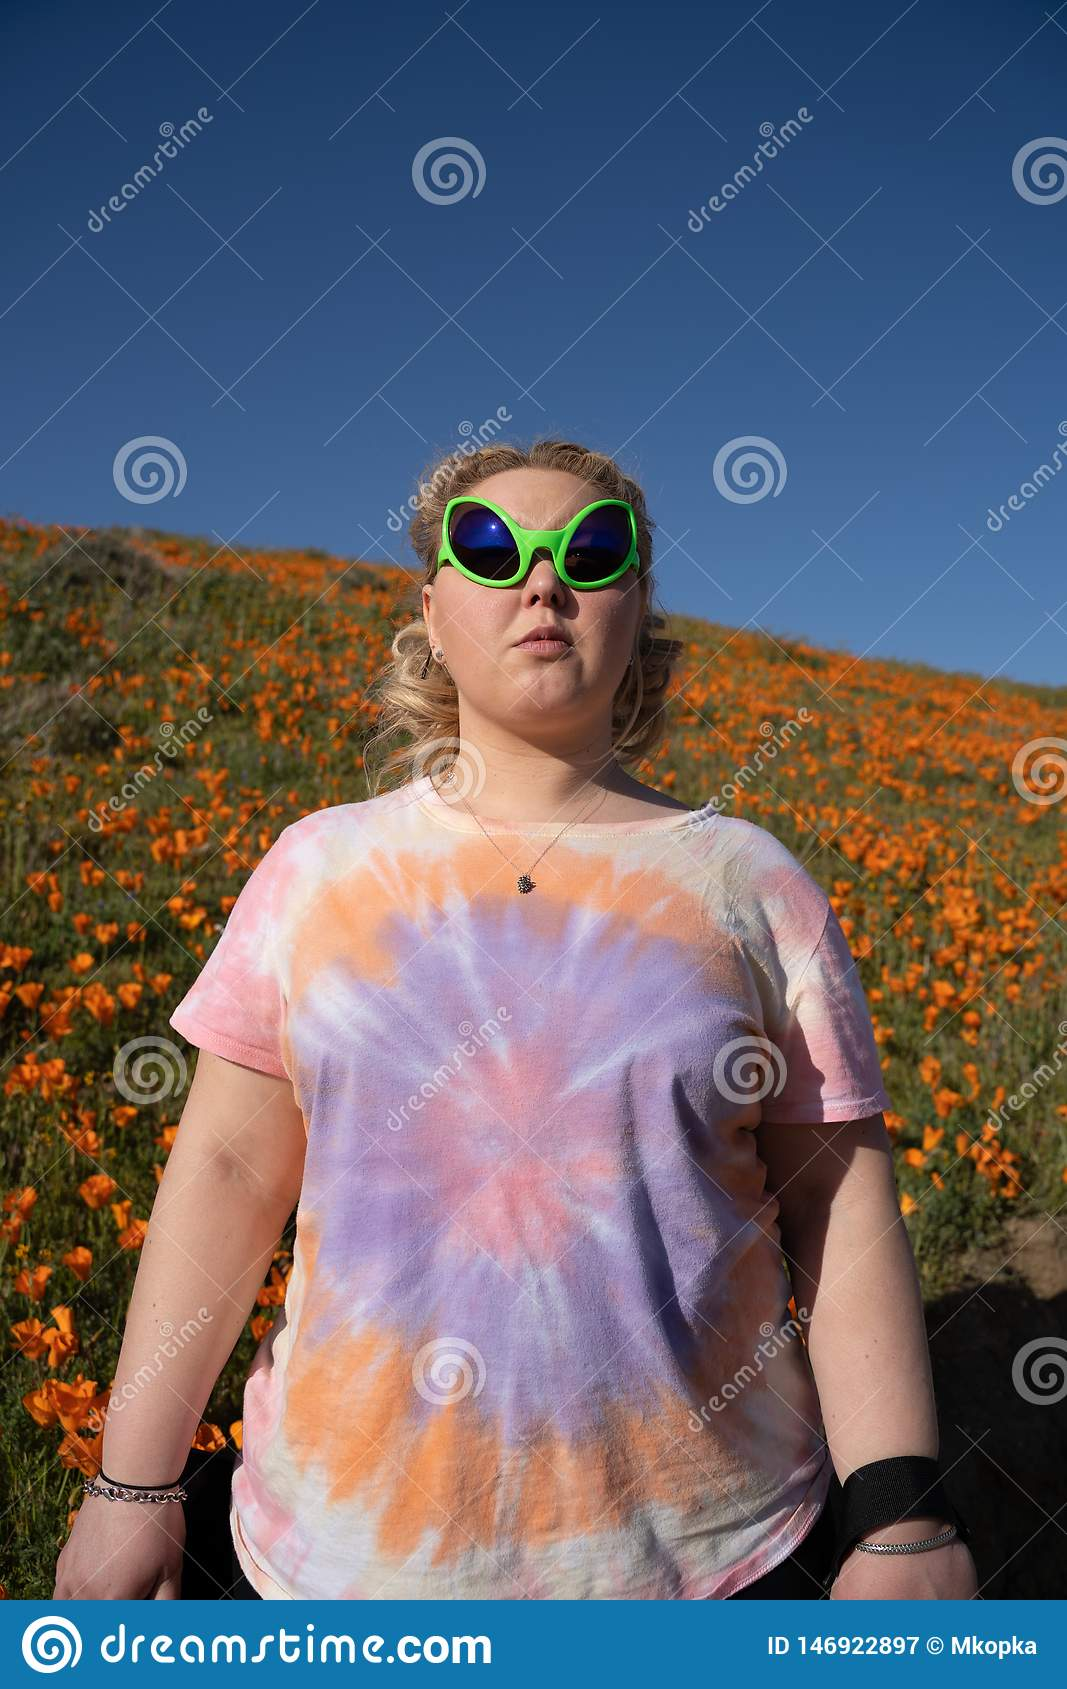 Young adult woman wearing alien sunglasses and a tie dye t-shirt stands in a field of poppies